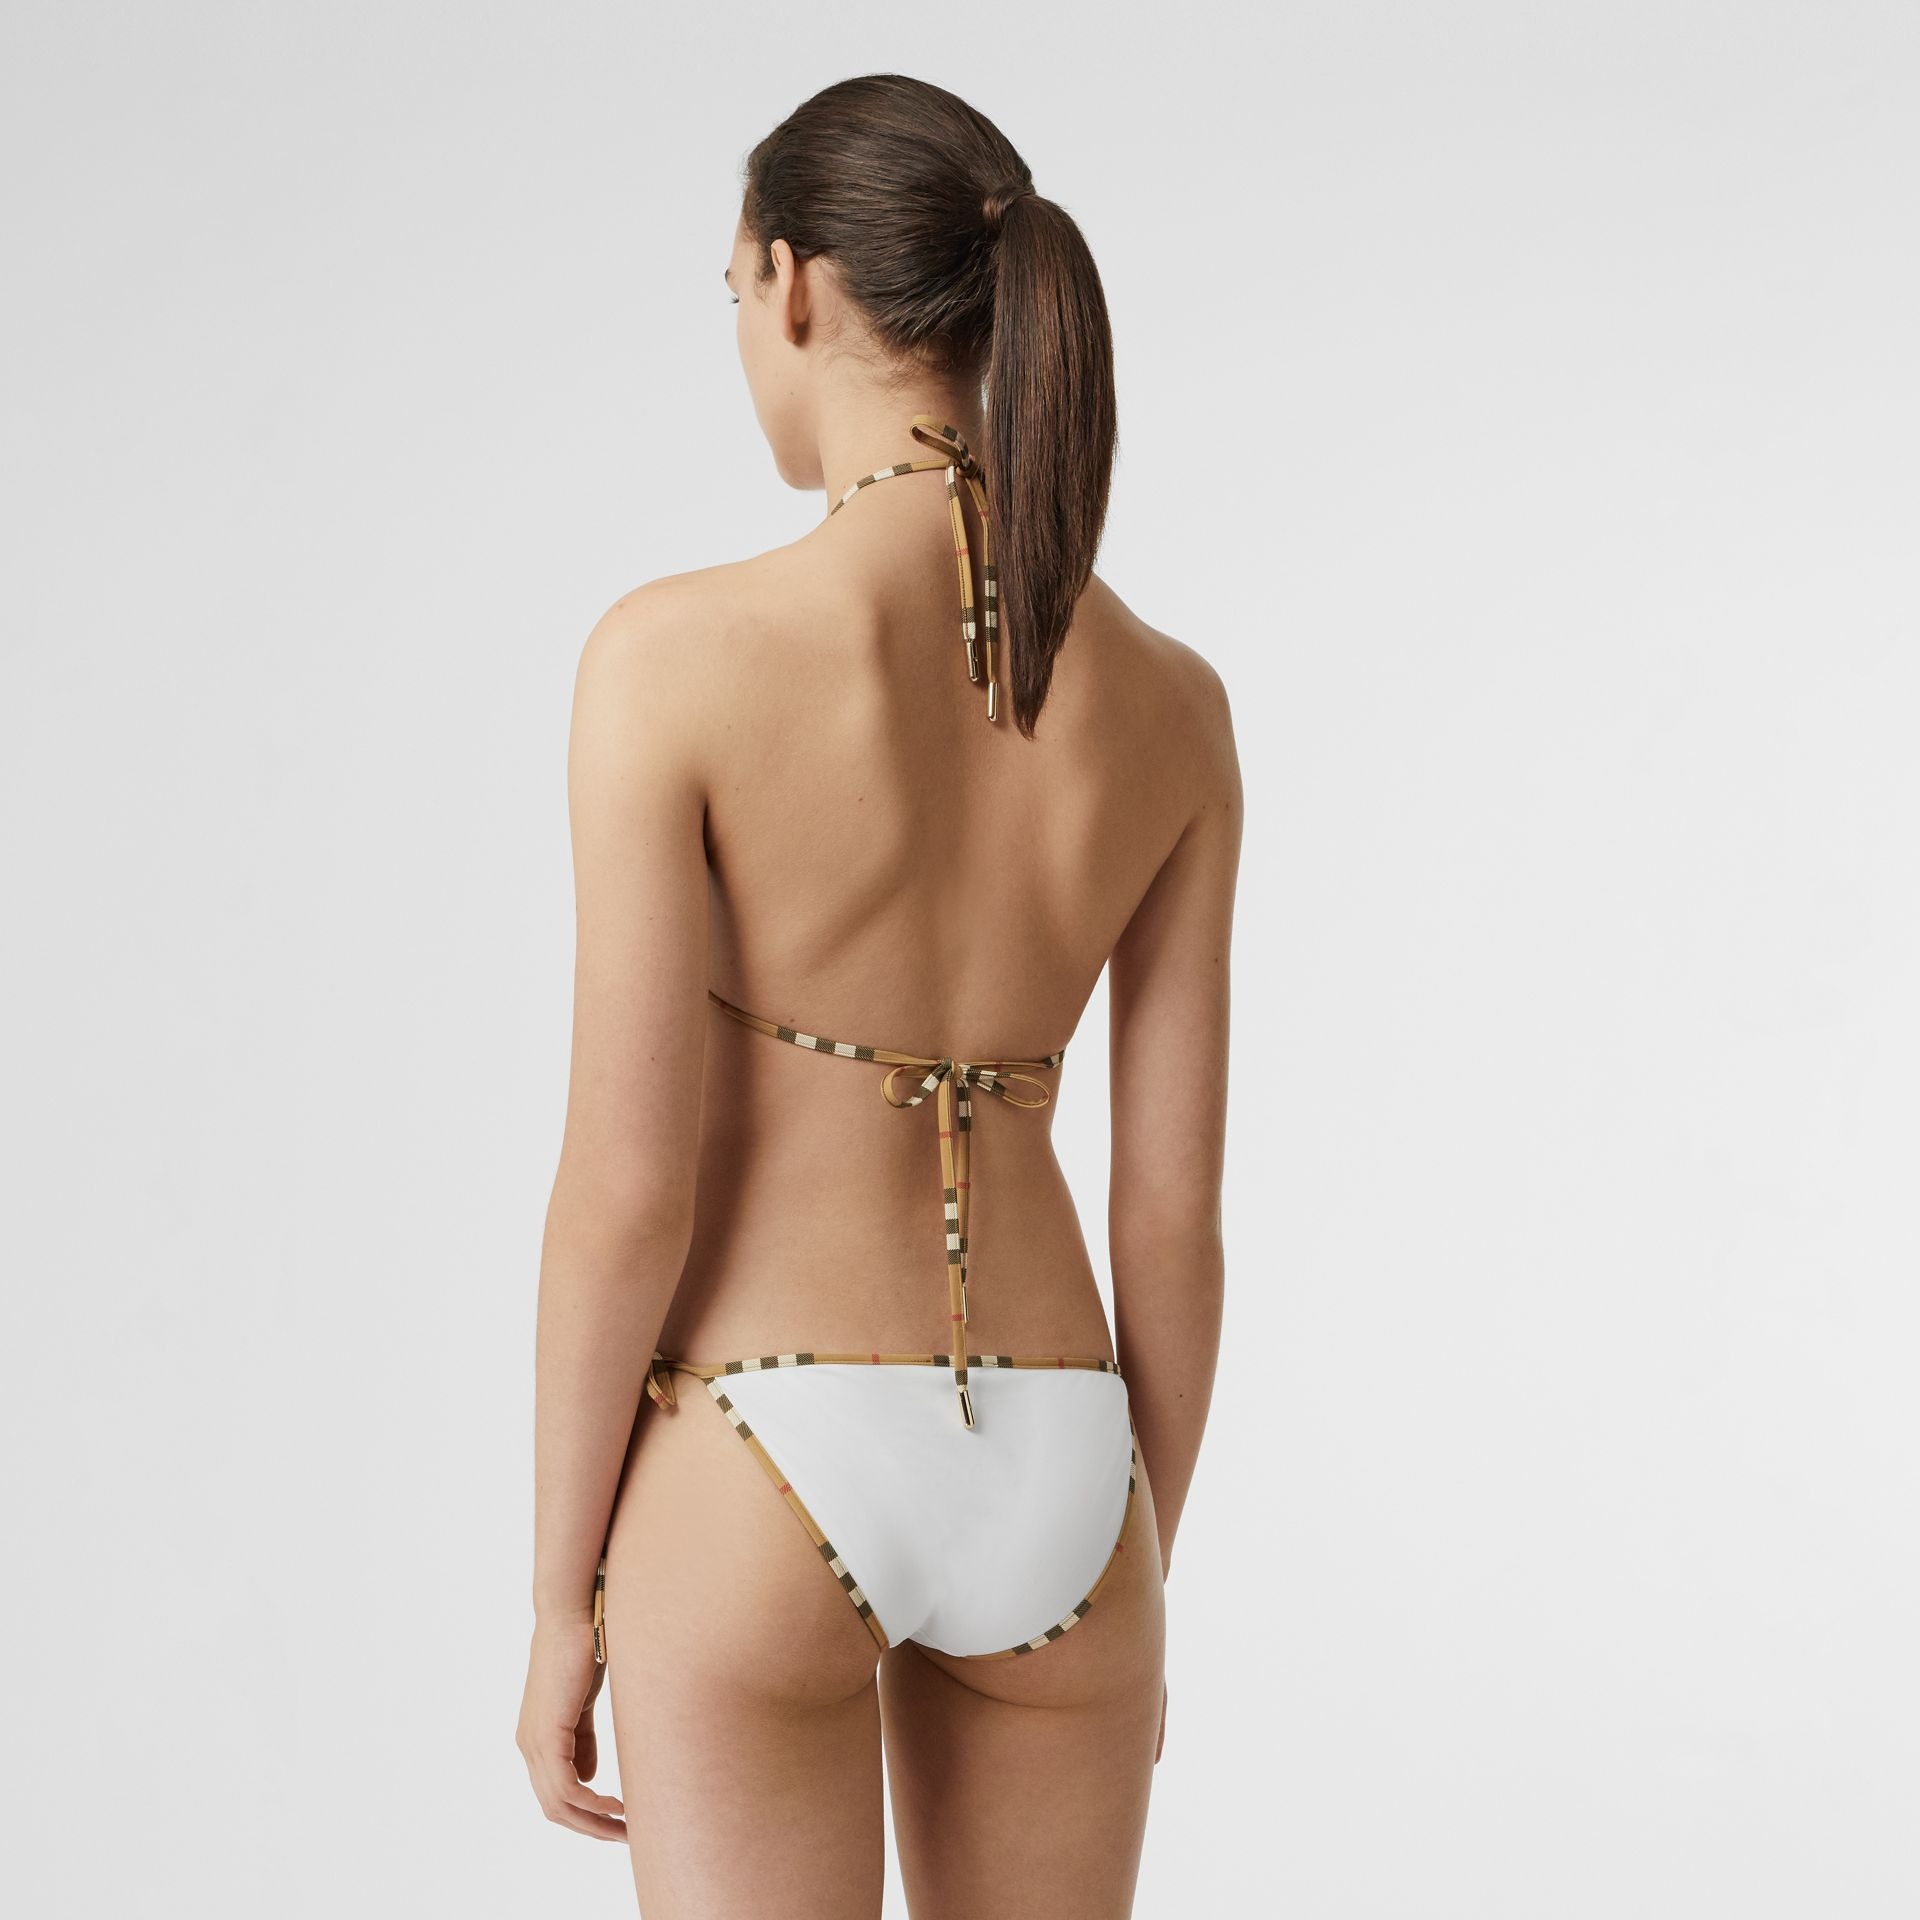 Vintage Check Trim Triangle Bikini in White - Women | Burberry Canada - gallery image 1